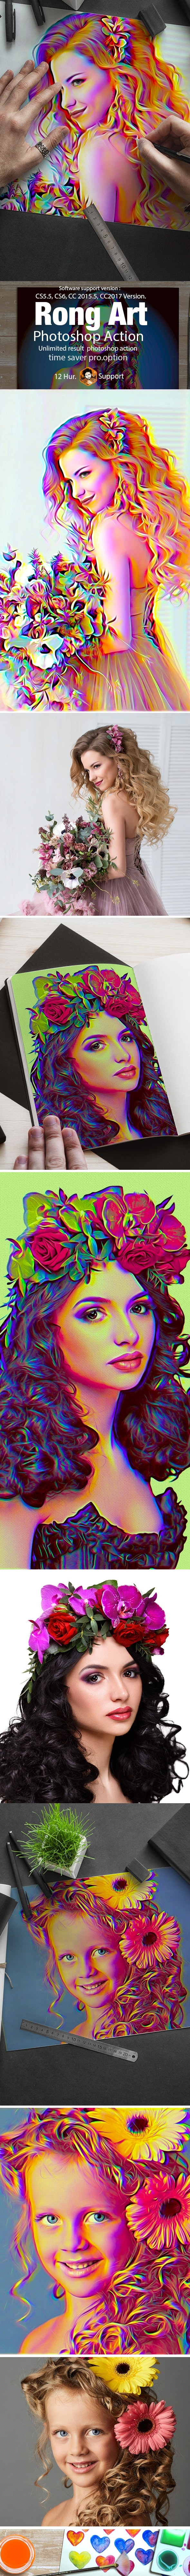 Rong Art Action - Photo Effects Actions